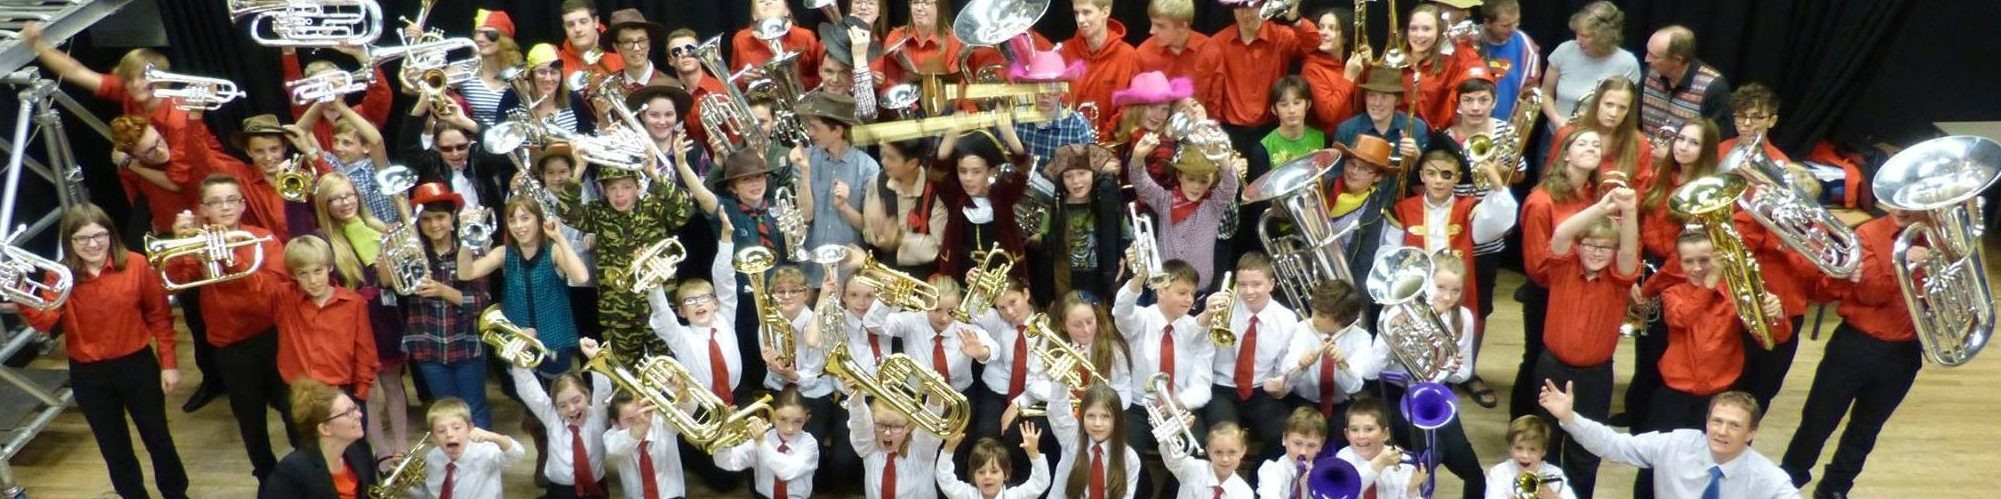 3 bands Brooksbank Xmas 2015